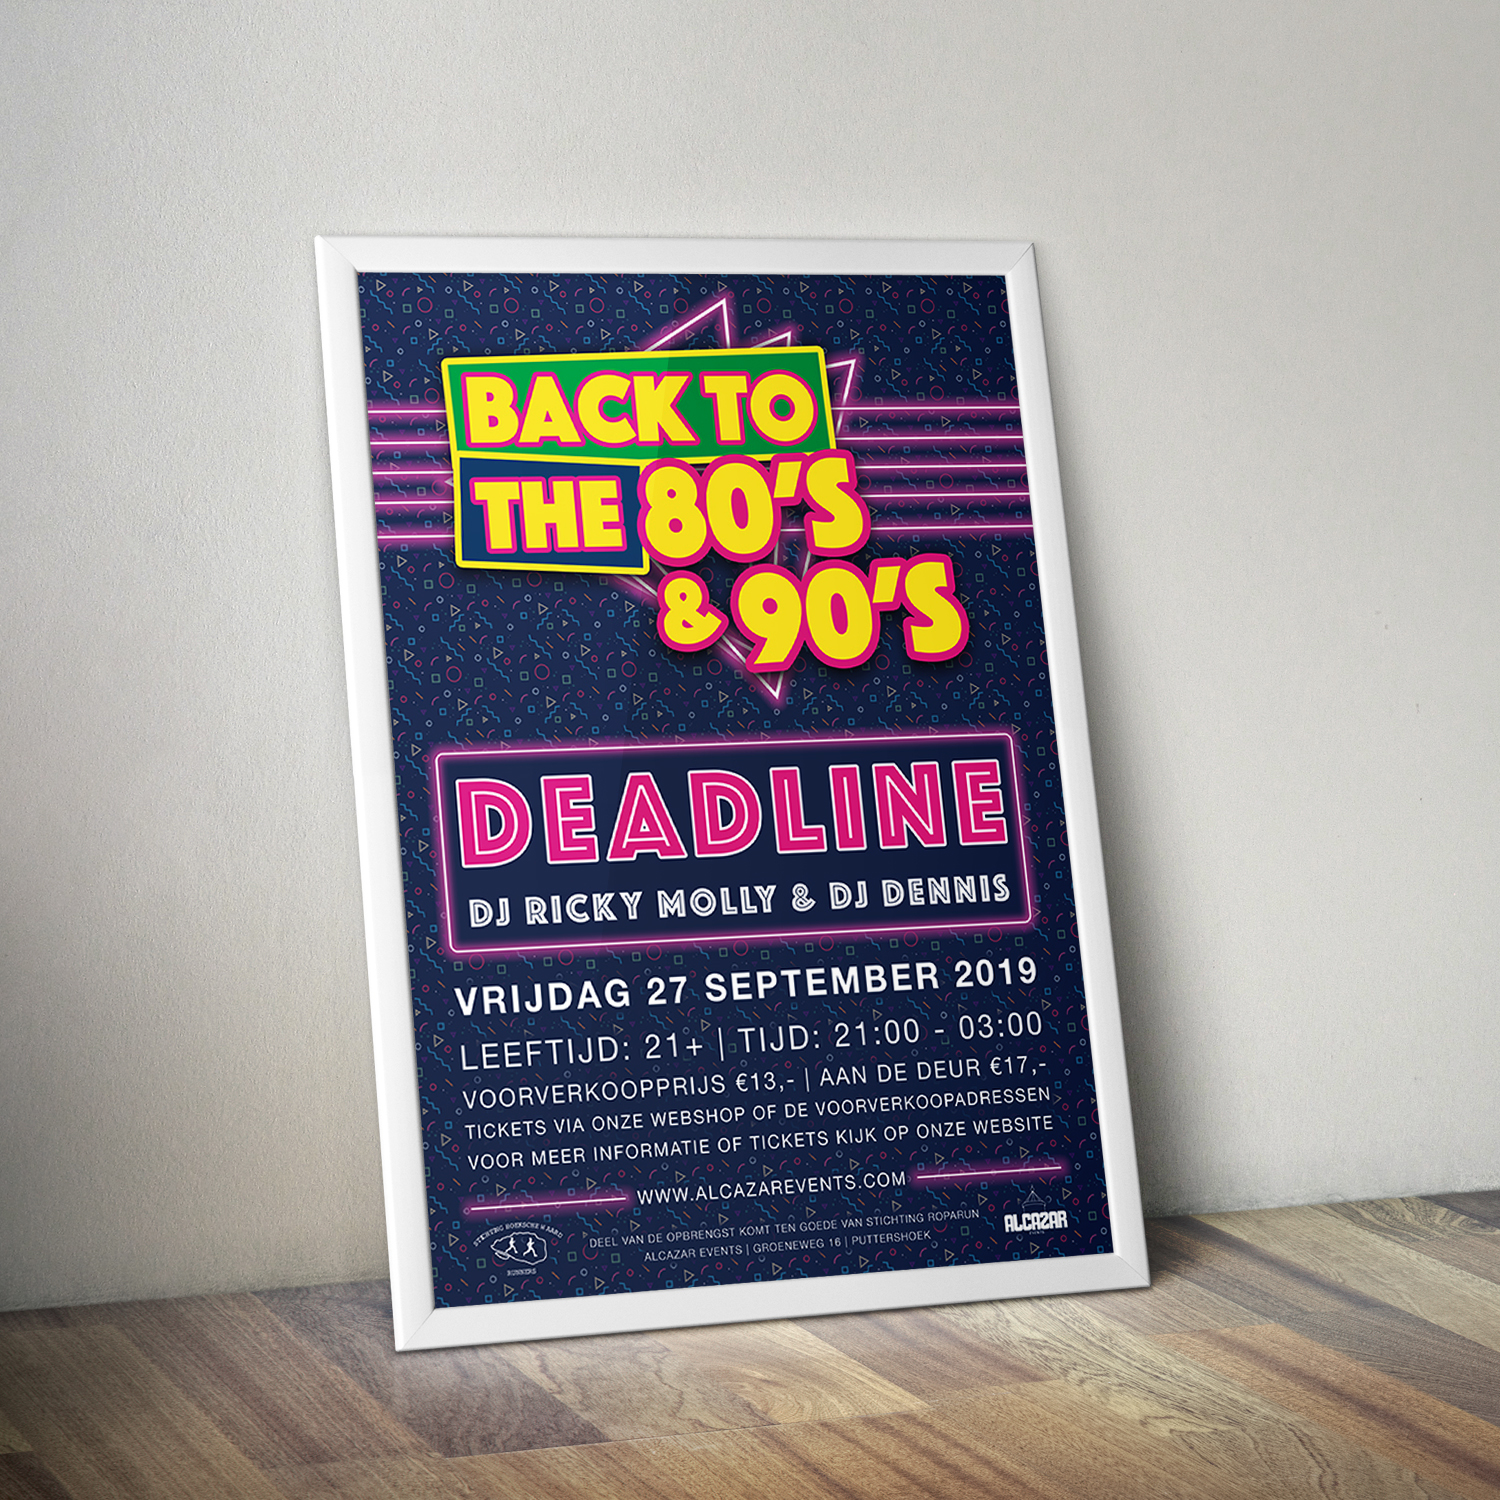 Back to the 80's & 90's